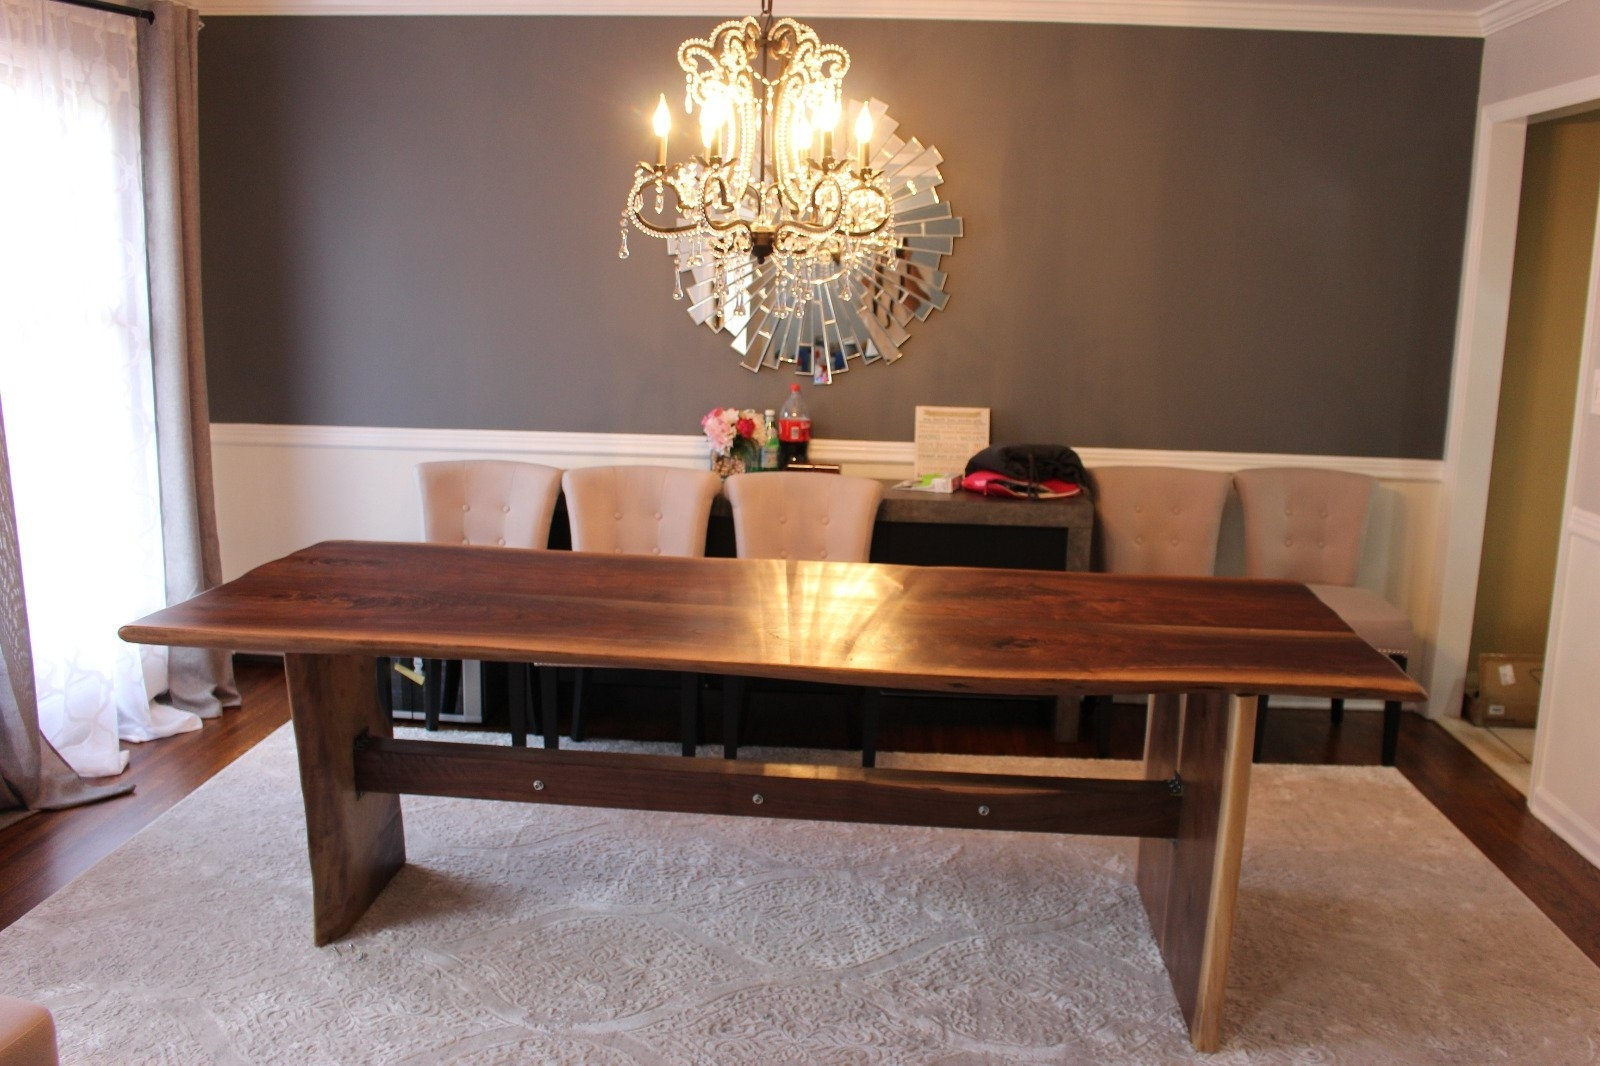 Custom Wood Dining Tables In New York Ny, New Jersey Nj, Long Island With Regard To Best And Newest Dining Tables New York (View 3 of 25)